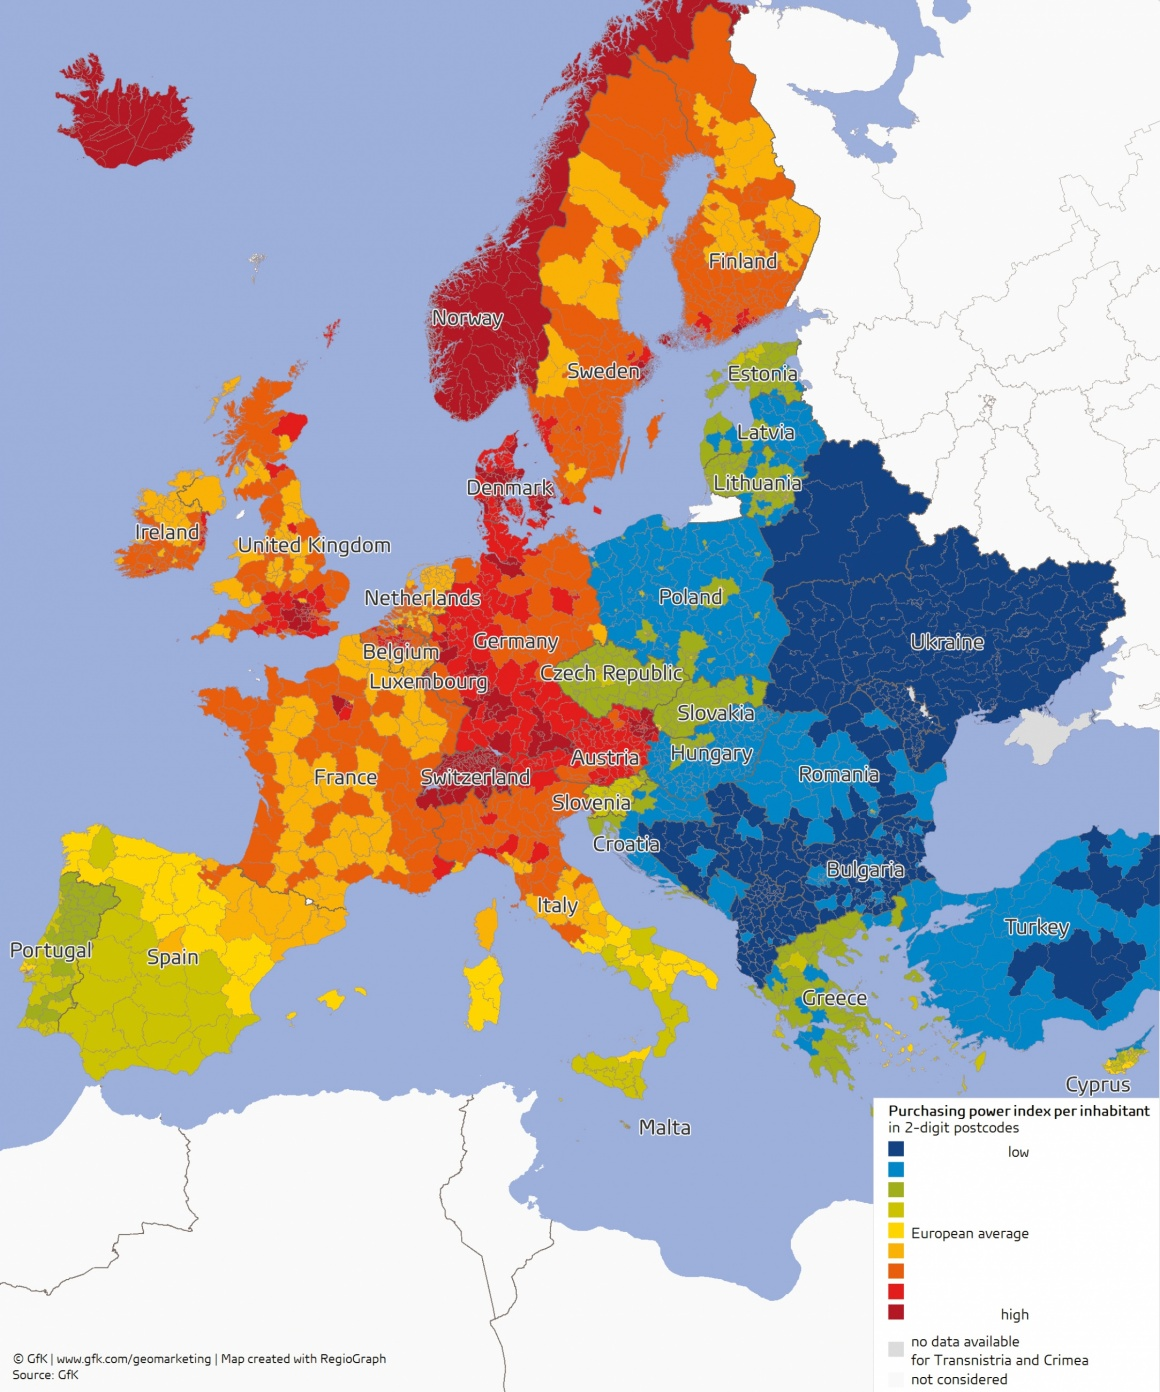 Colored graphic about purchasing power in Europe